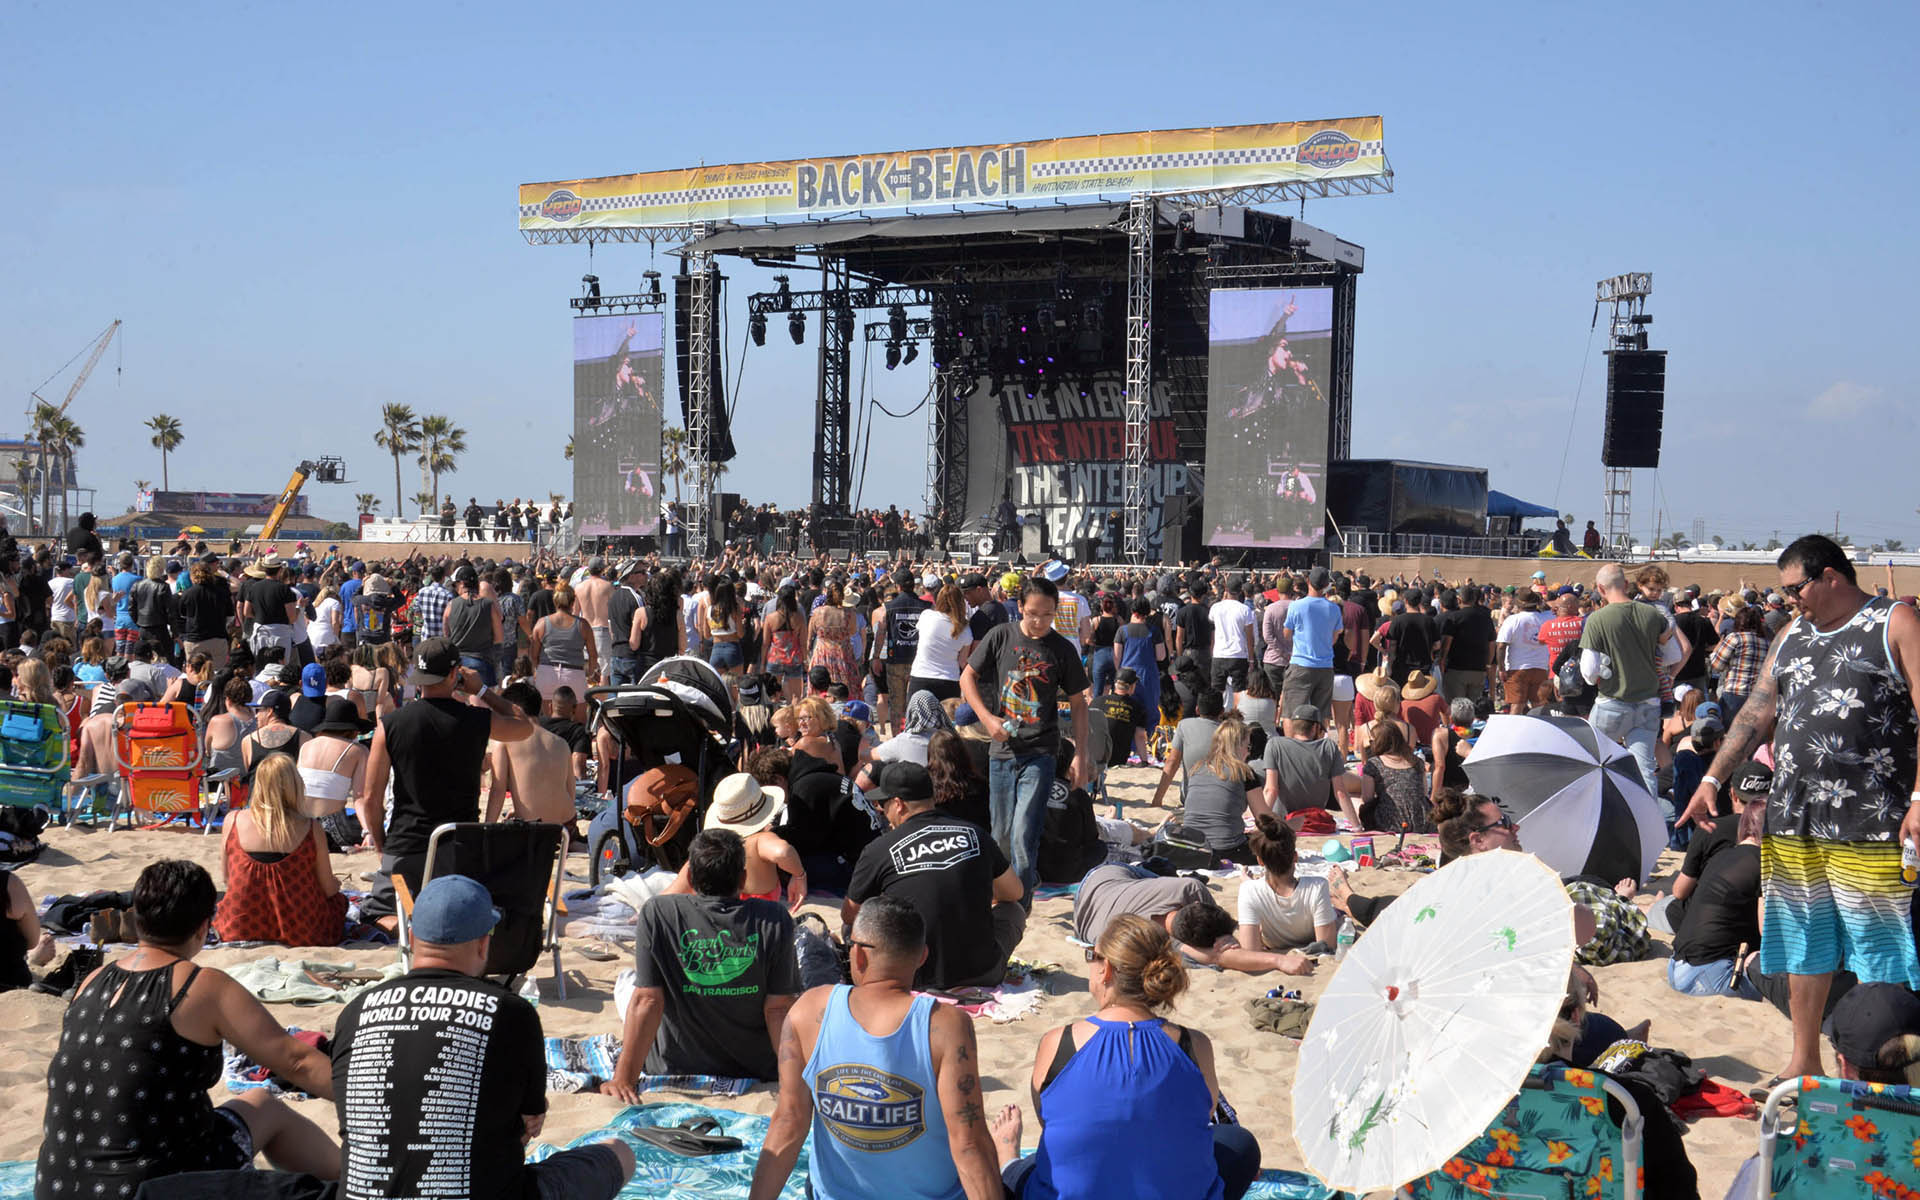 Crowds enjoy the sun and music at last year's Back to the Beach Festival. (All photos by Dan Angona.)